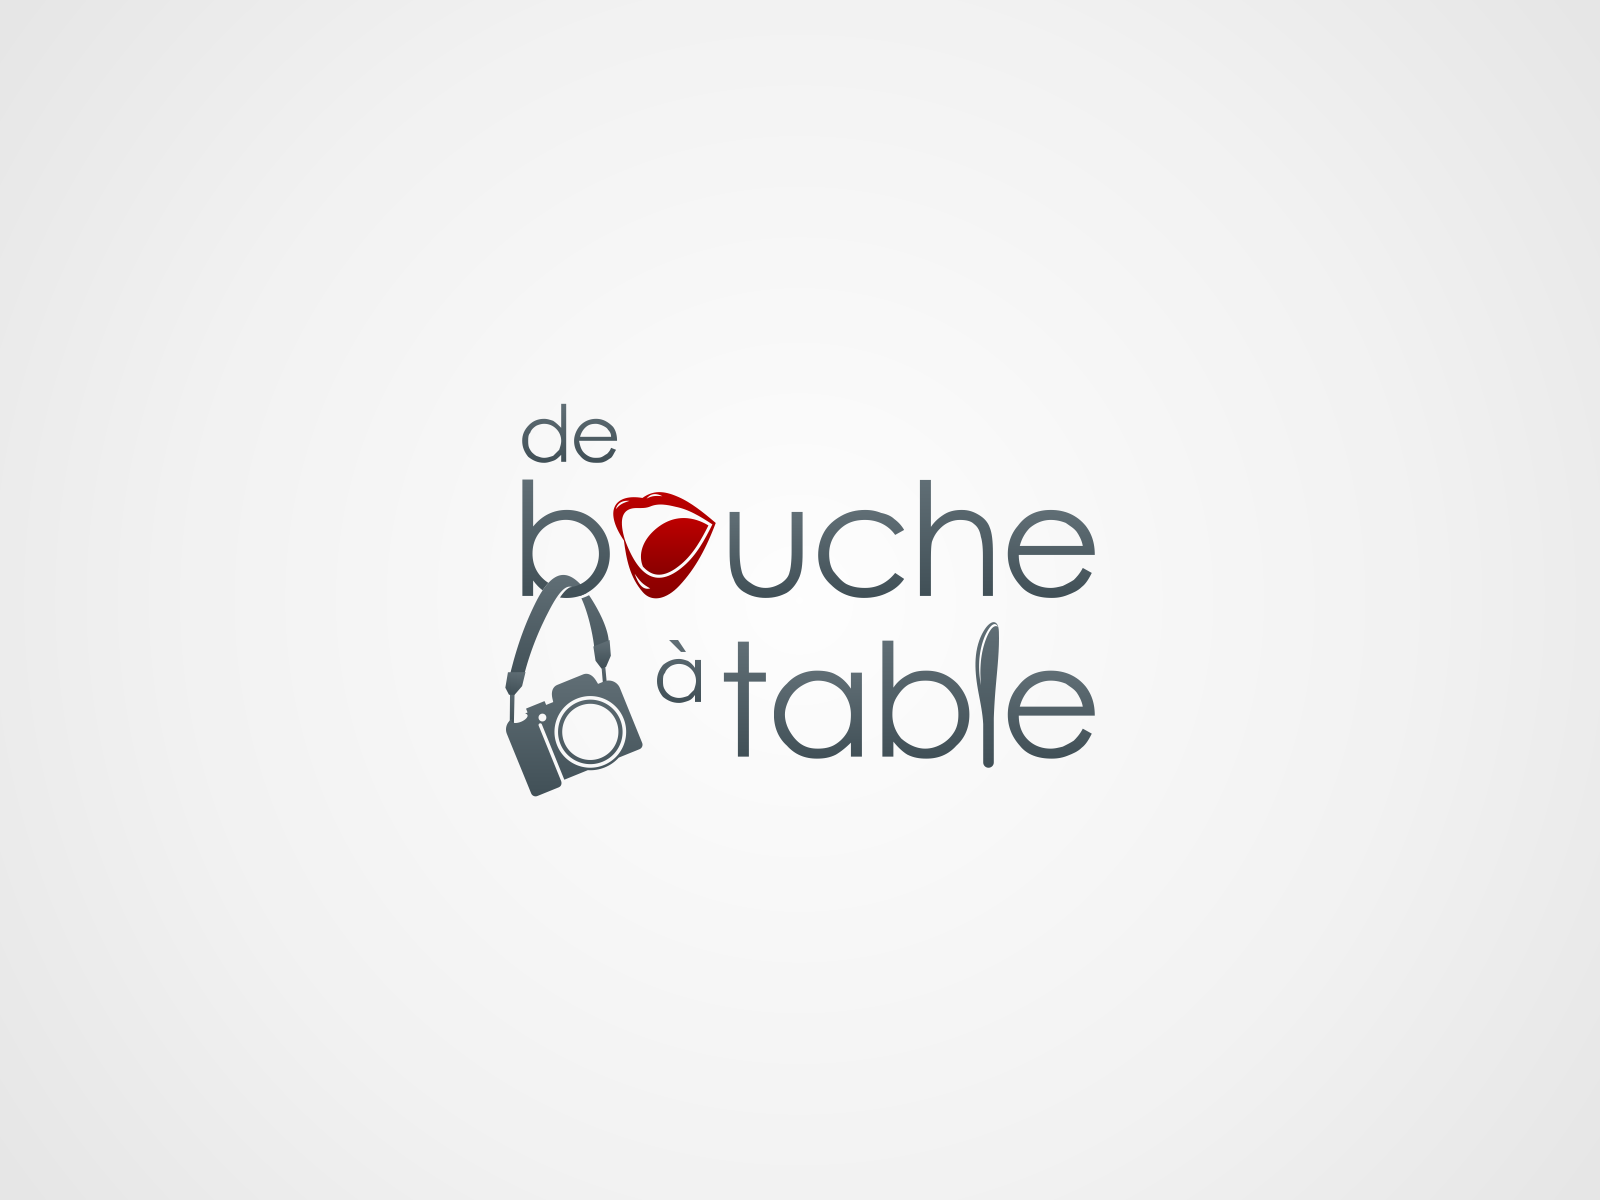 Create the next logo for De bouche à table